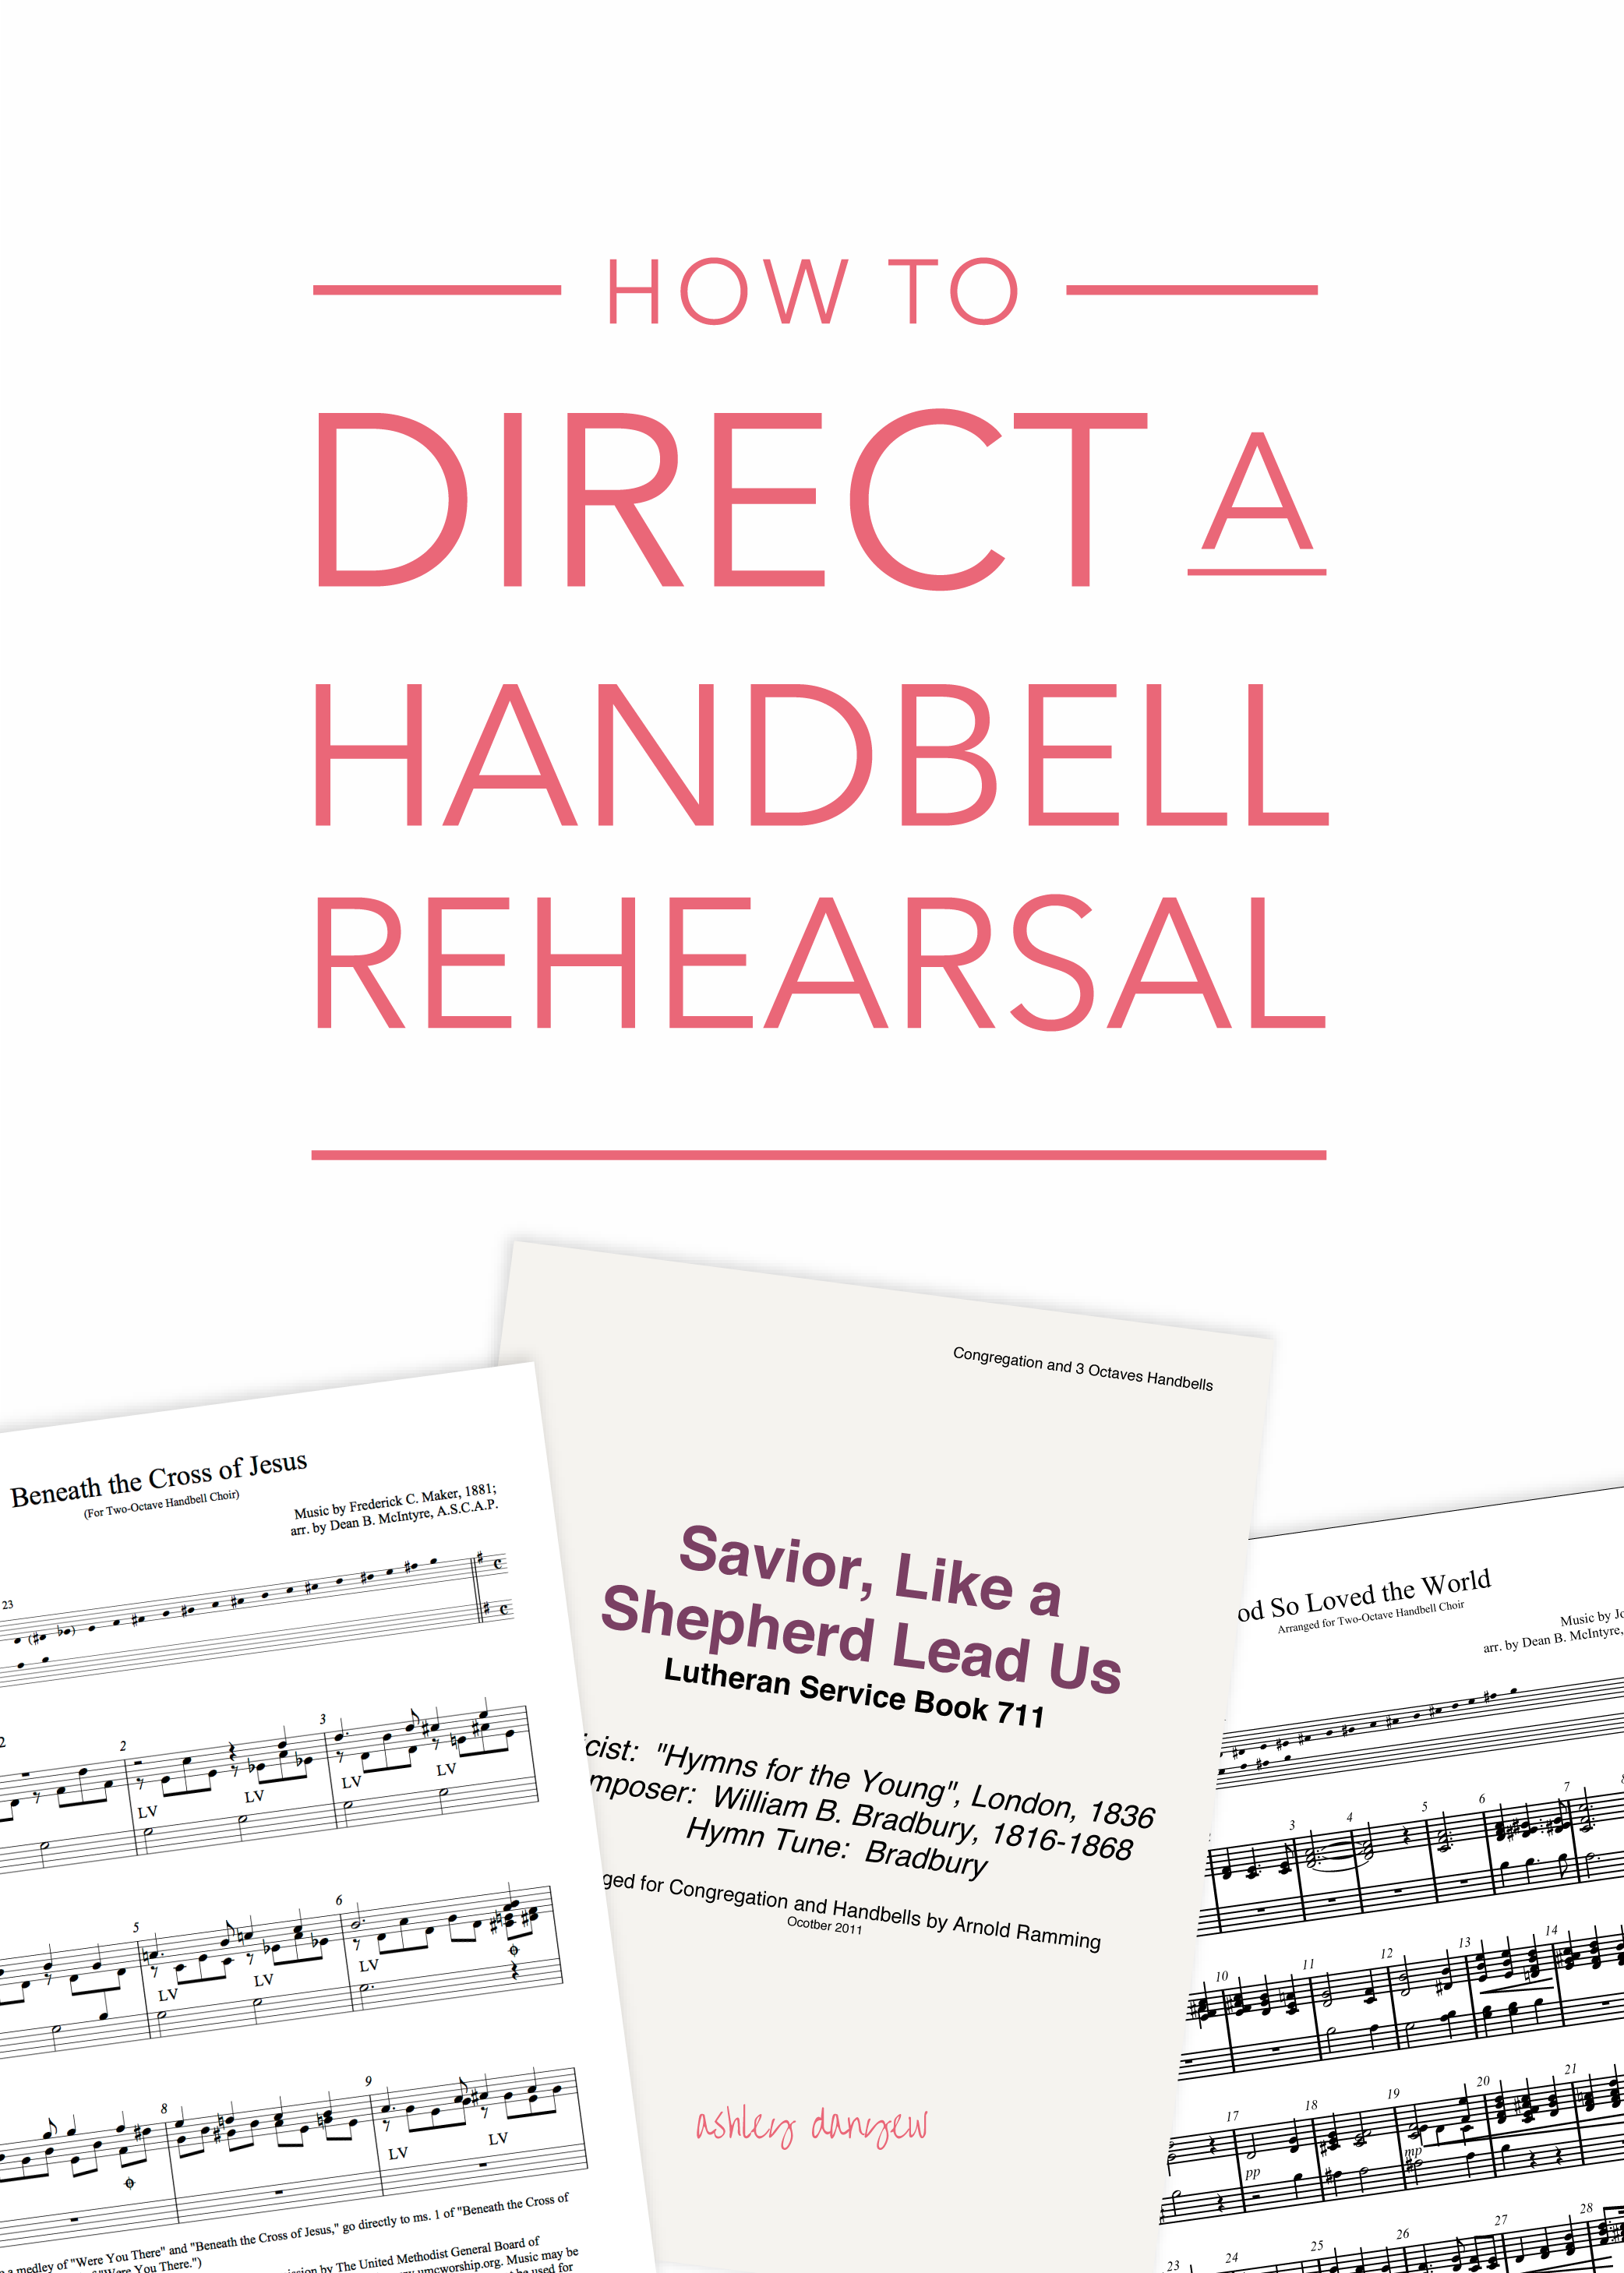 Copy of How to Direct a Handbell Rehearsal